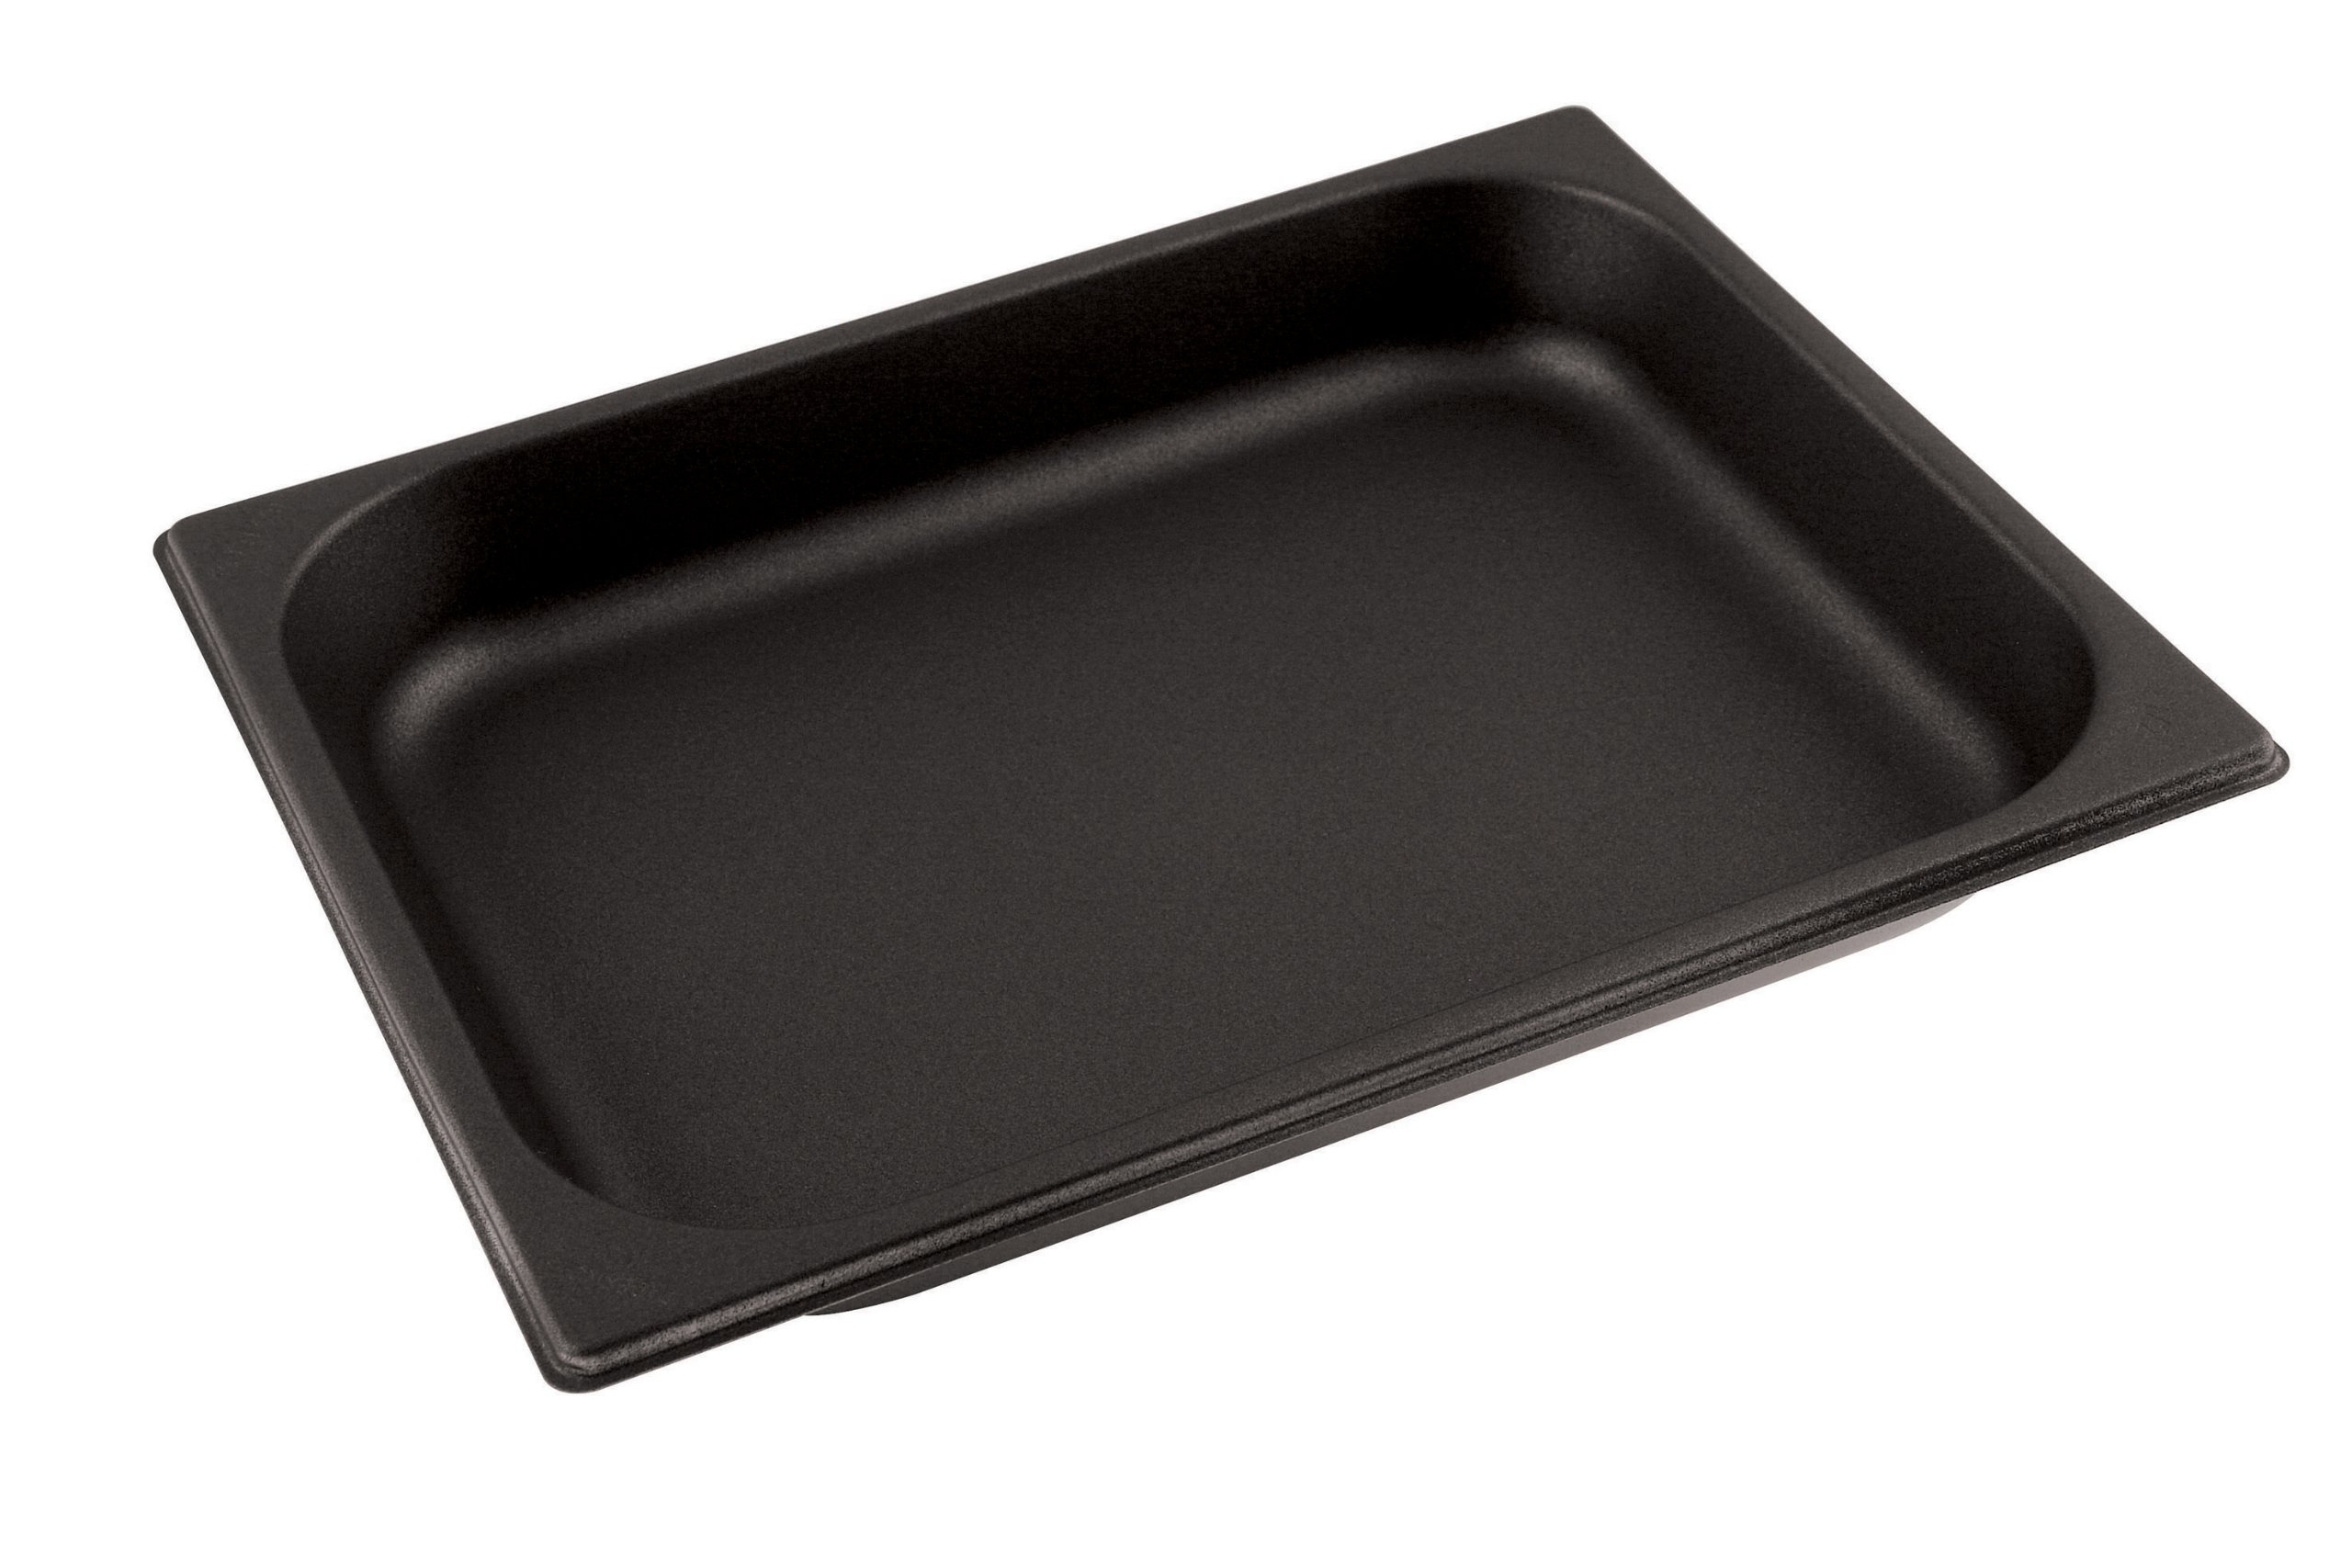 Paderno World Cuisine 12 1/2 inches by 10 1/2 inches Non-stick Pan for Hotel Pan - 1/2 (depth: 3/4 inches)